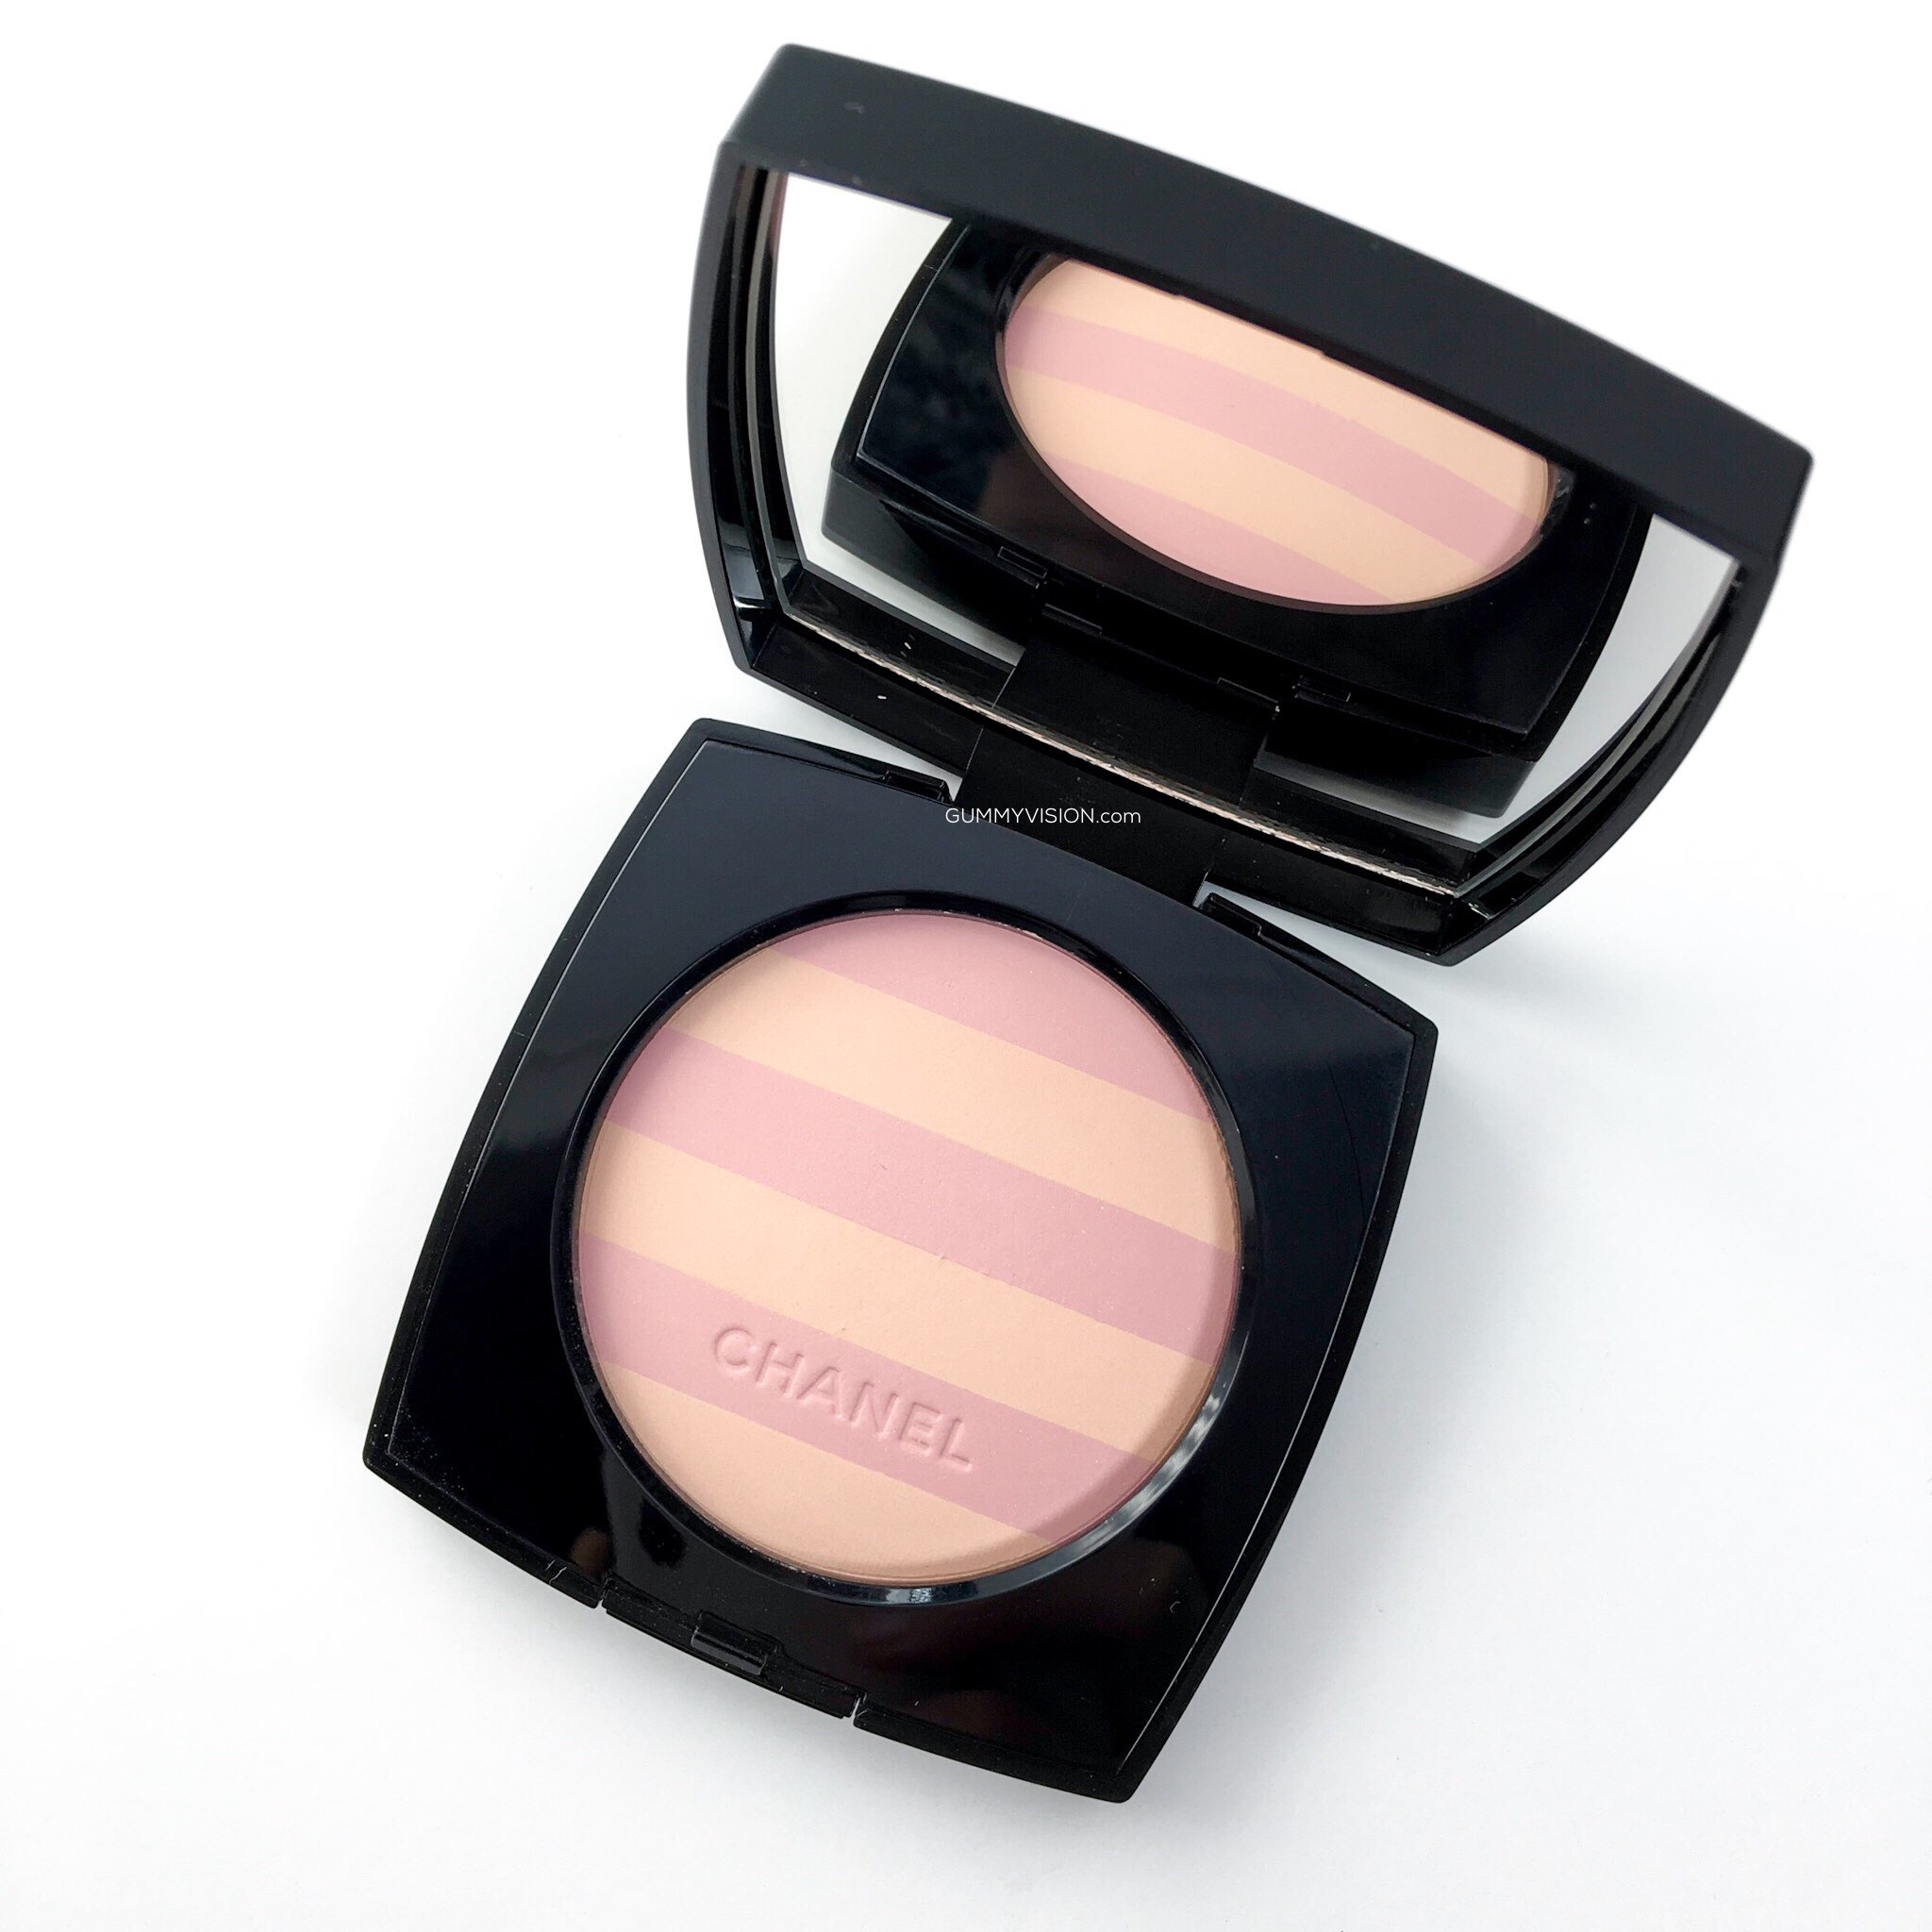 Chanel Les Beiges Healthy Glow Multi-Colour SPF 15 in Mariniere 01